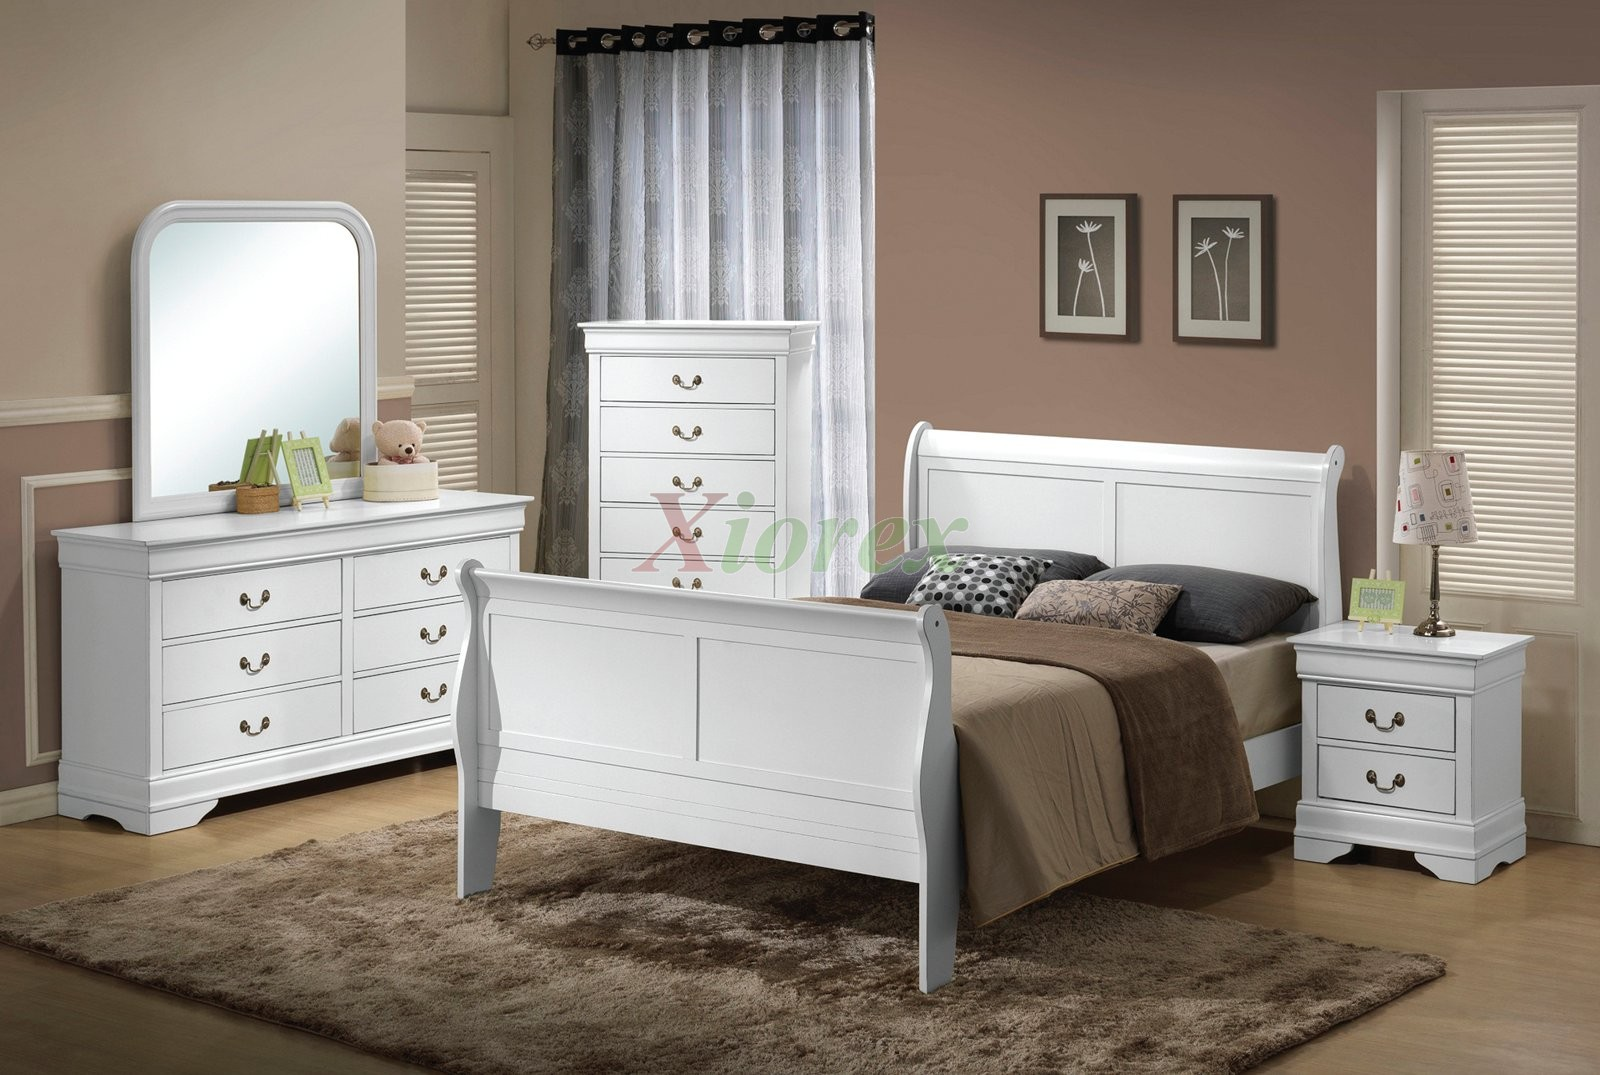 Semi gloss sleigh like bedroom furniture set 170 in cherry for White gloss bedroom furniture